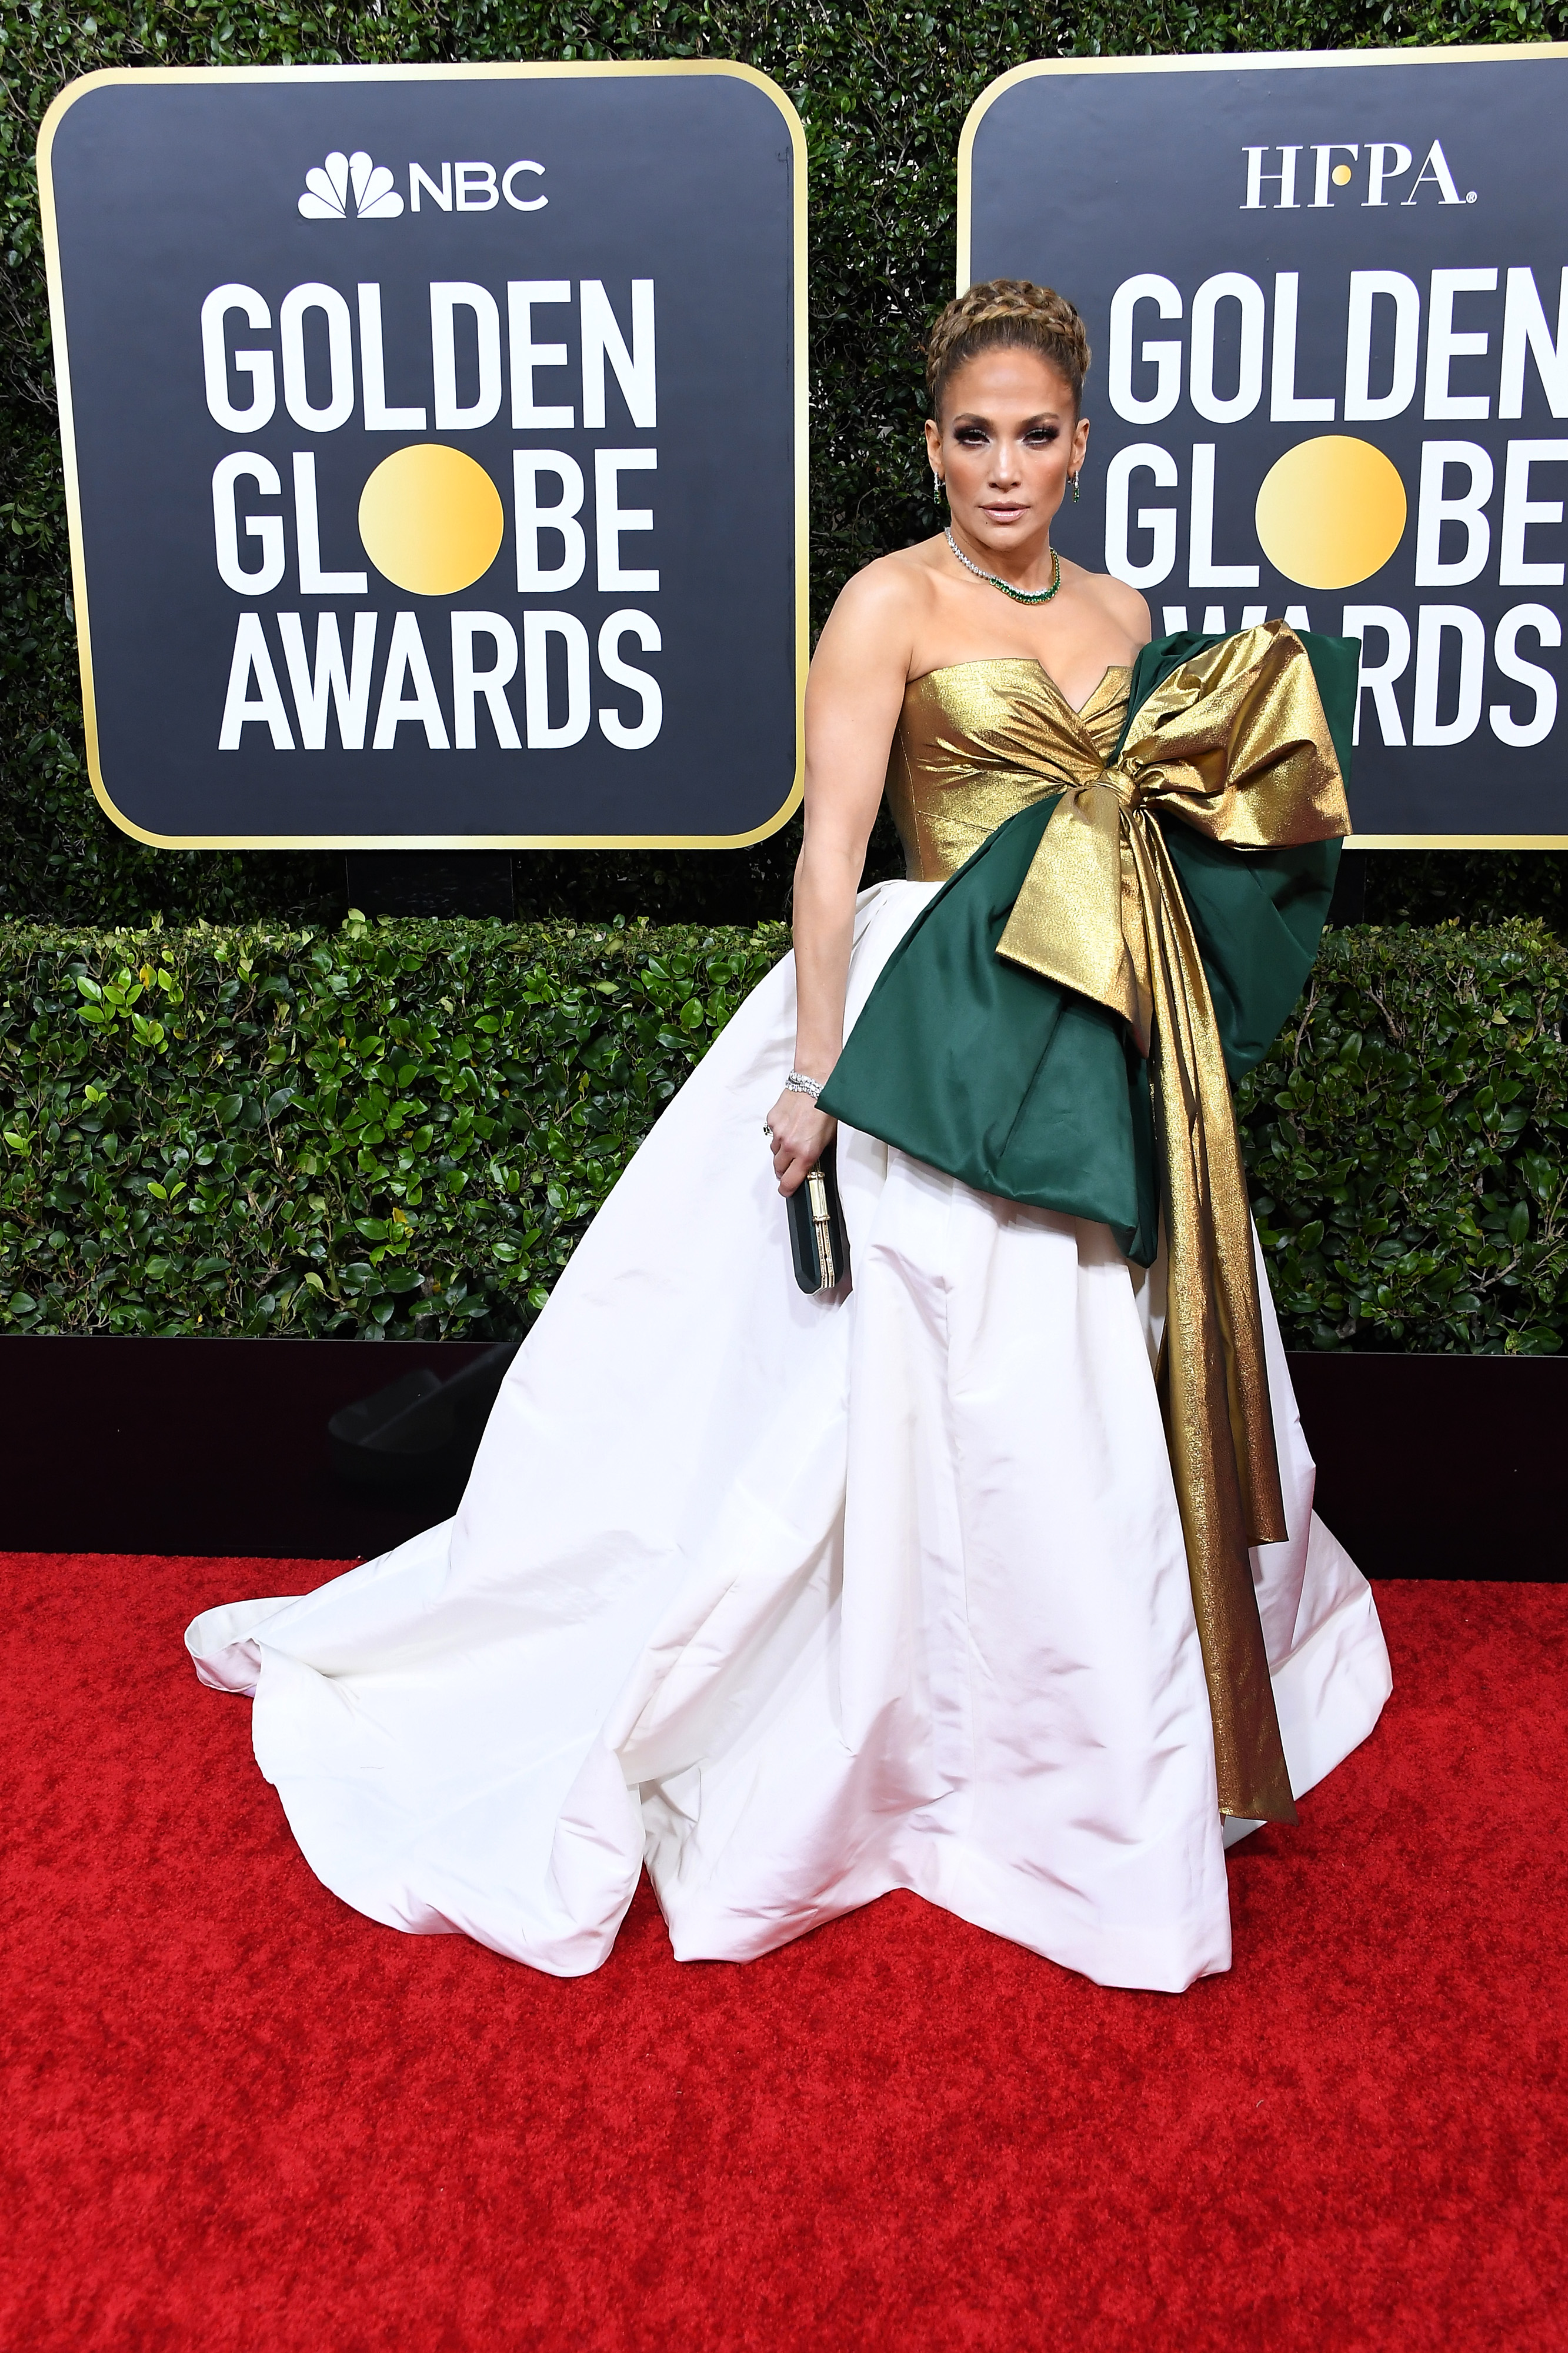 BEVERLY HILLS, CALIFORNIA - JANUARY 05: Jennifer Lopez attends the 77th Annual Golden Globe Awards at The Beverly Hilton Hotel on January 05, 2020 in Beverly Hills, California. (Photo by Steve Granitz/WireImage)